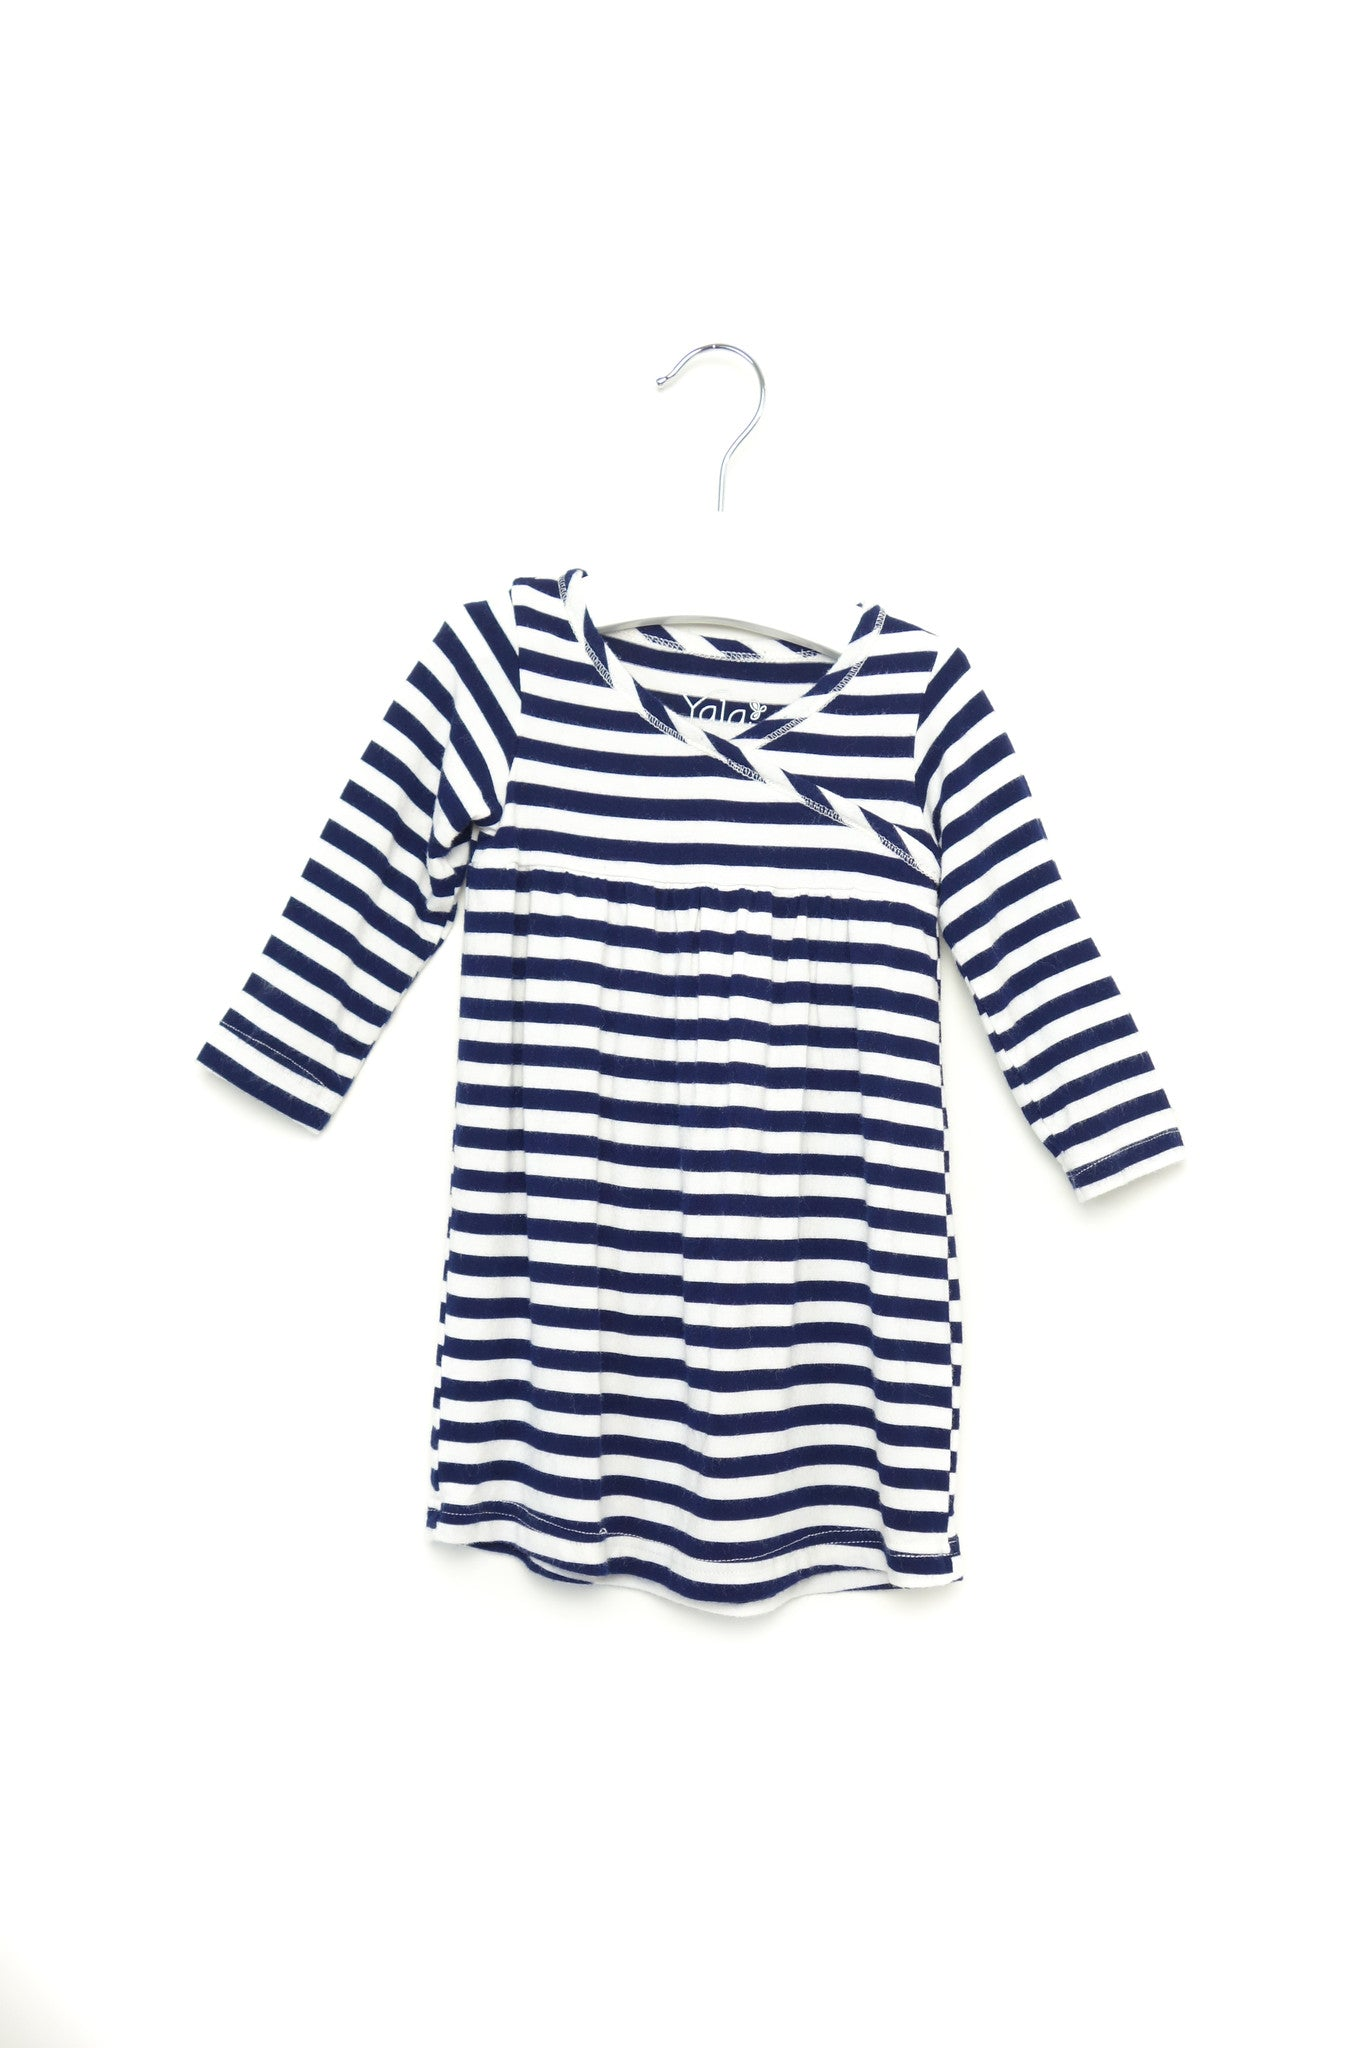 10001517~Dress 12-18M, Yala at Retykle - Online Baby & Kids Clothing Up to 90% Off